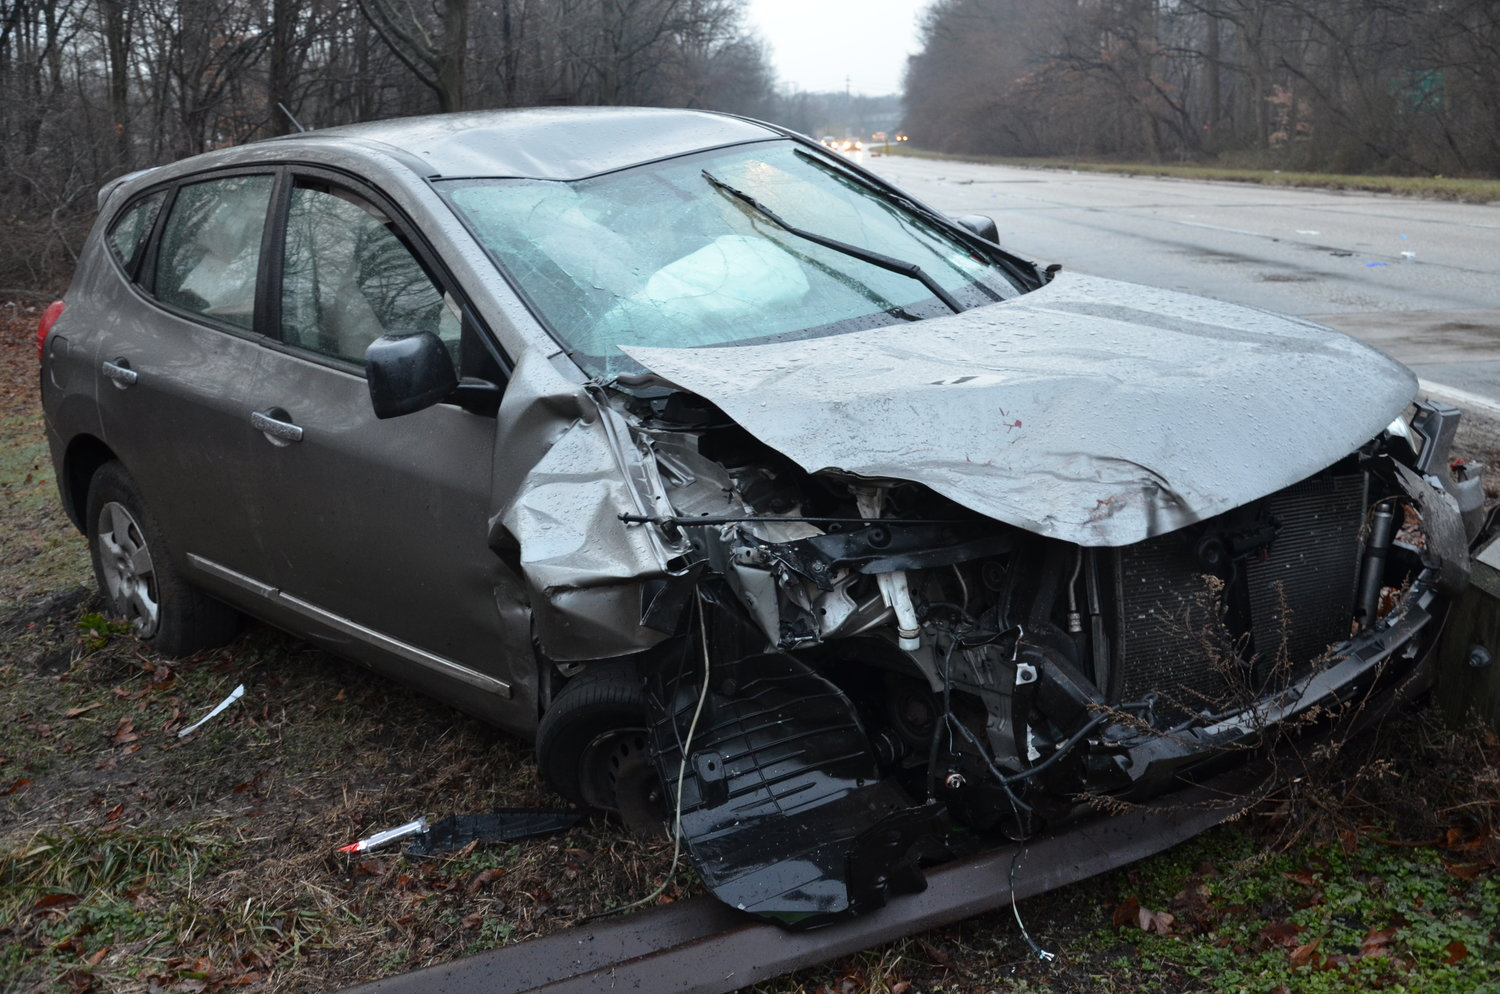 The driver of the 2012 Nissan Rogue hit the rear of the 2006 Kia that went off the road through the guardrail and then slammed into a tree off northbound Meadowbrook Parkway exit M7.